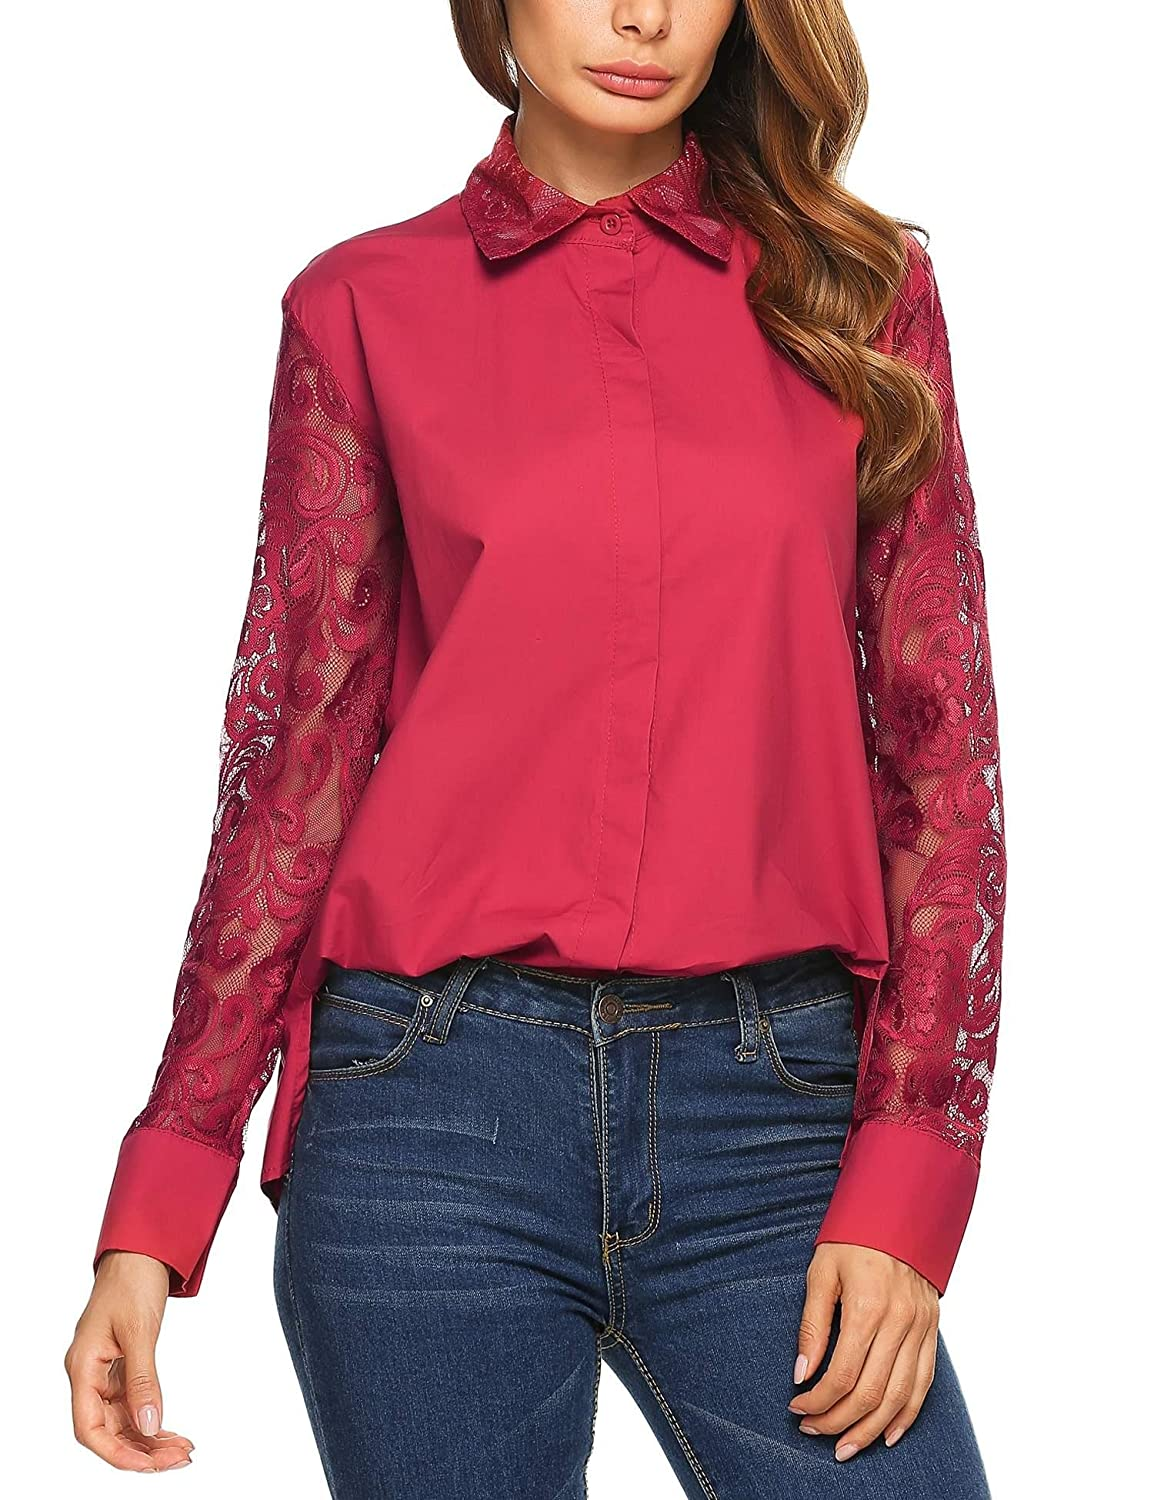 1930s Style Tops, Blouses & Sweaters Corgy Women Casual Lace Patchwork Long Sleeve Turn-Down Collar Button Down Blouse Shirts $19.99 AT vintagedancer.com